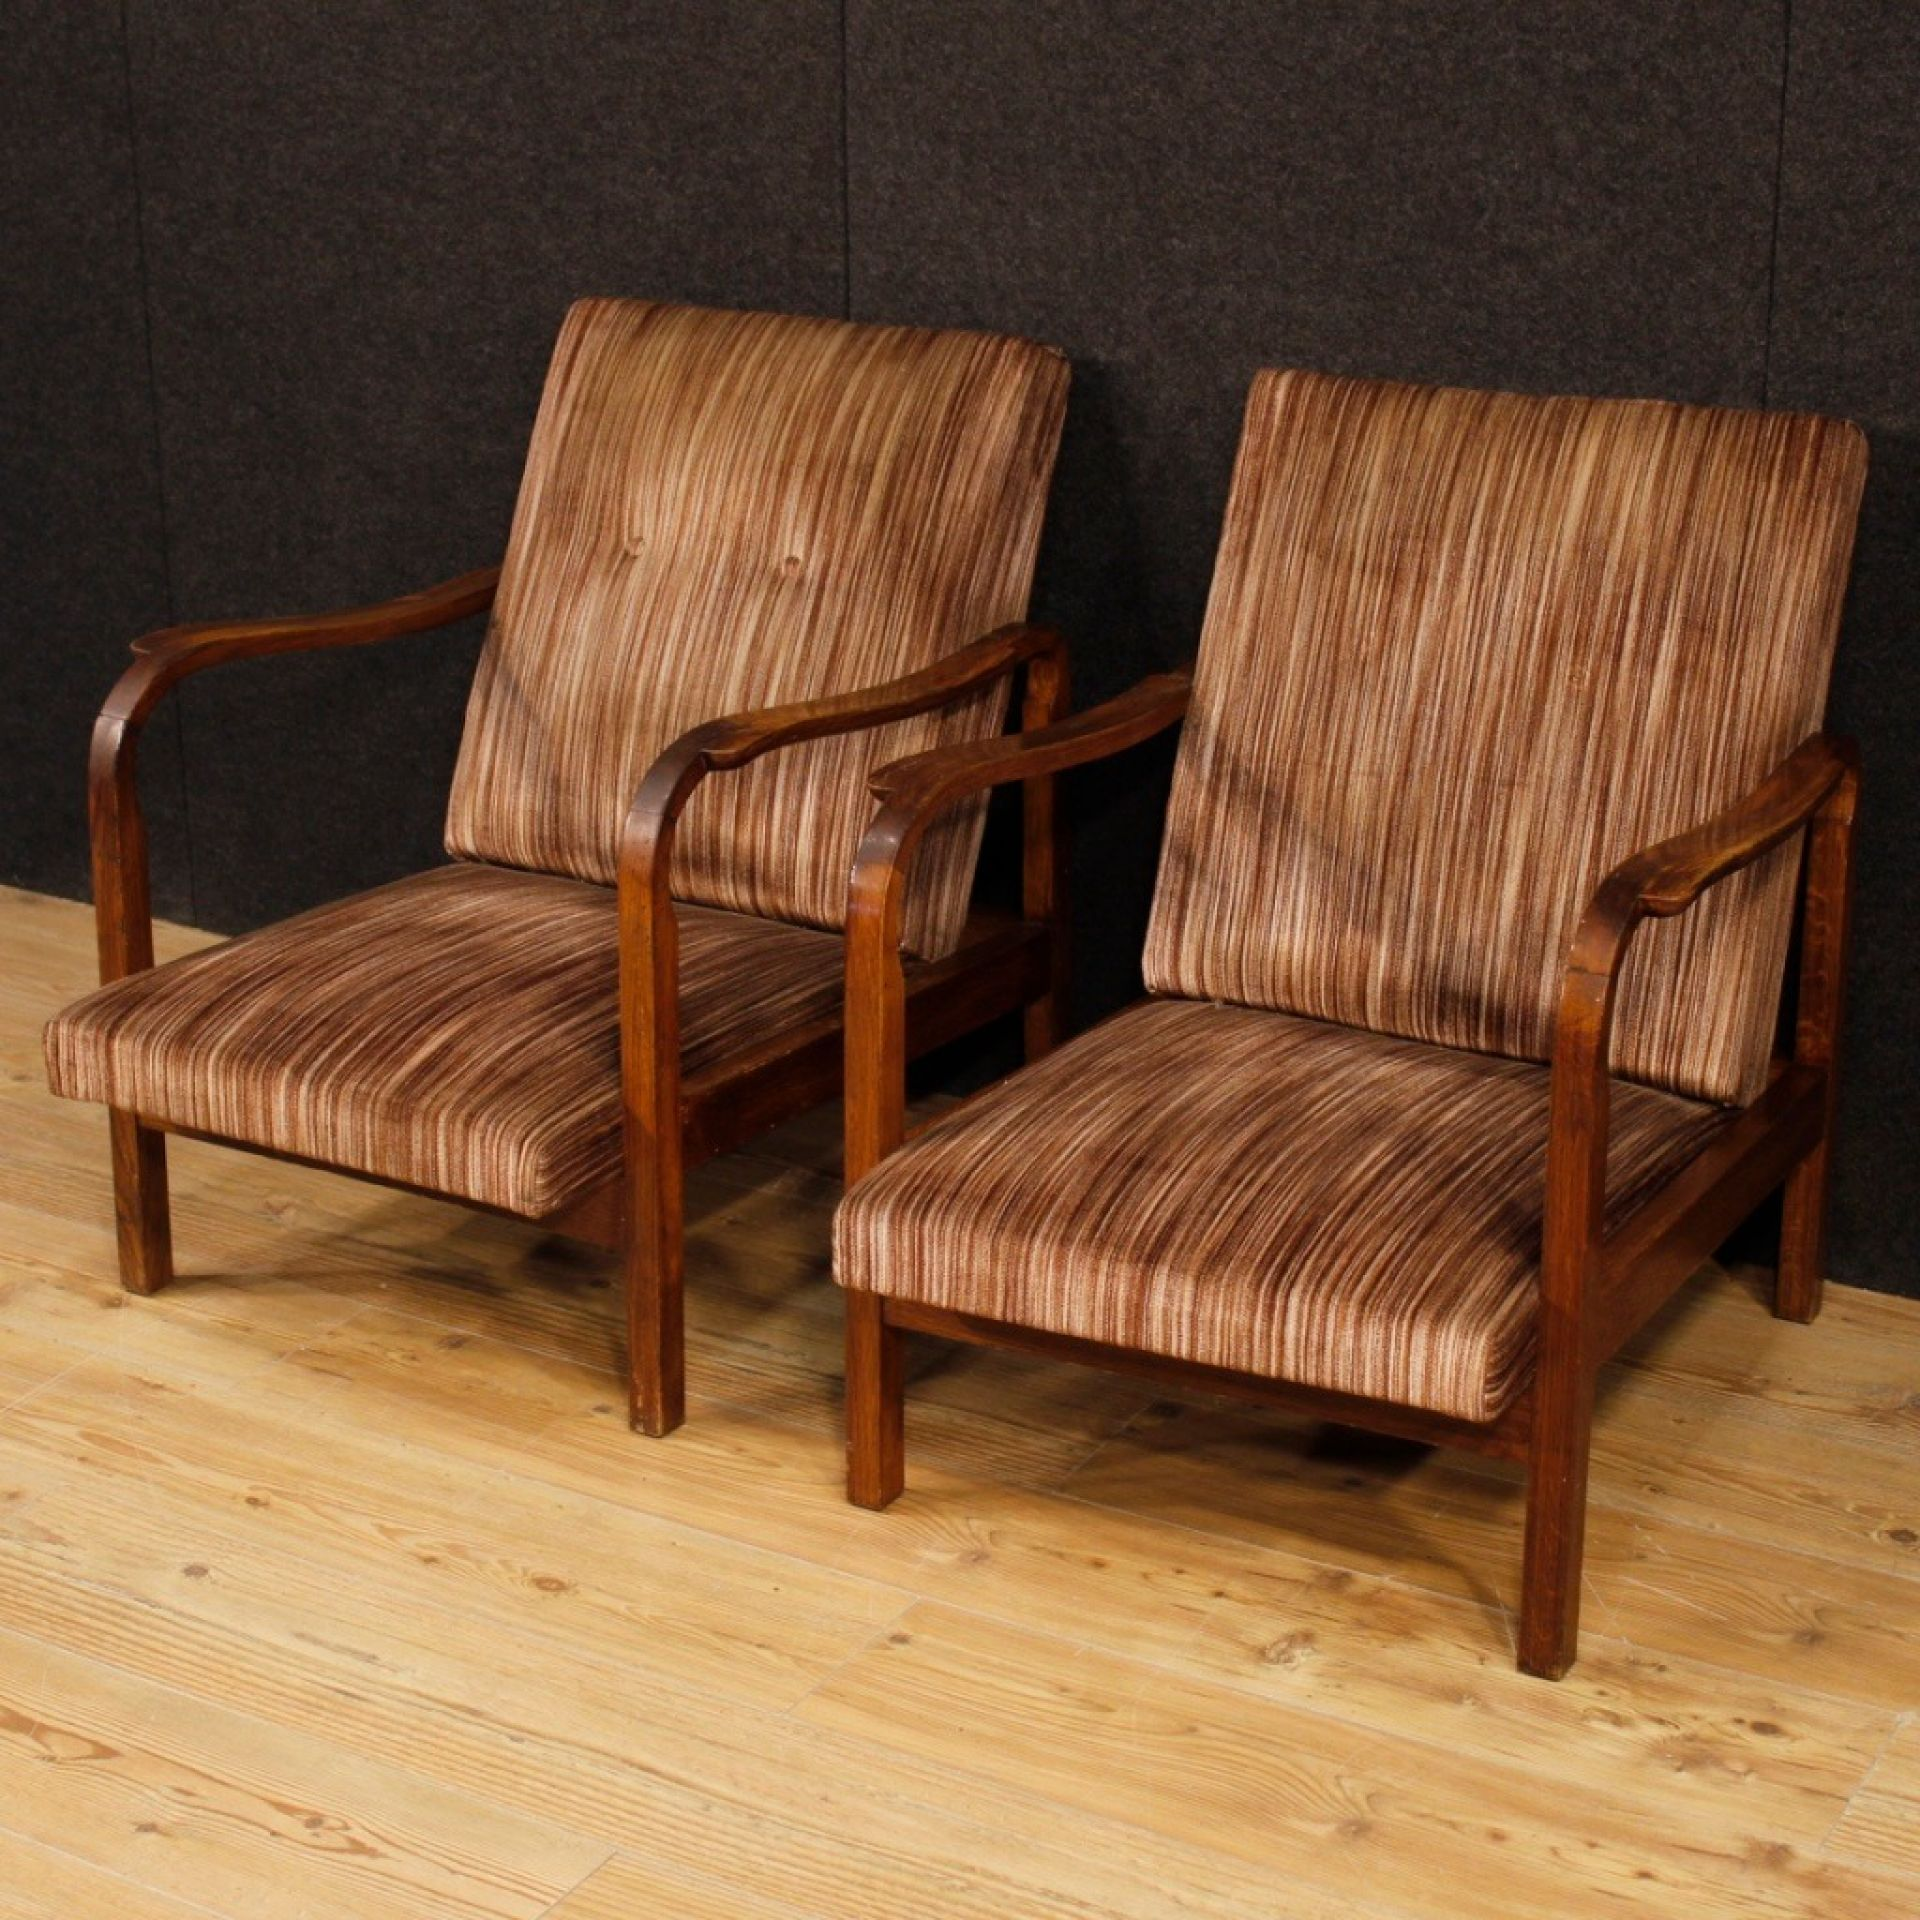 20th Century Wood With Stripped Fabric Italian Design Armchairs, 1970